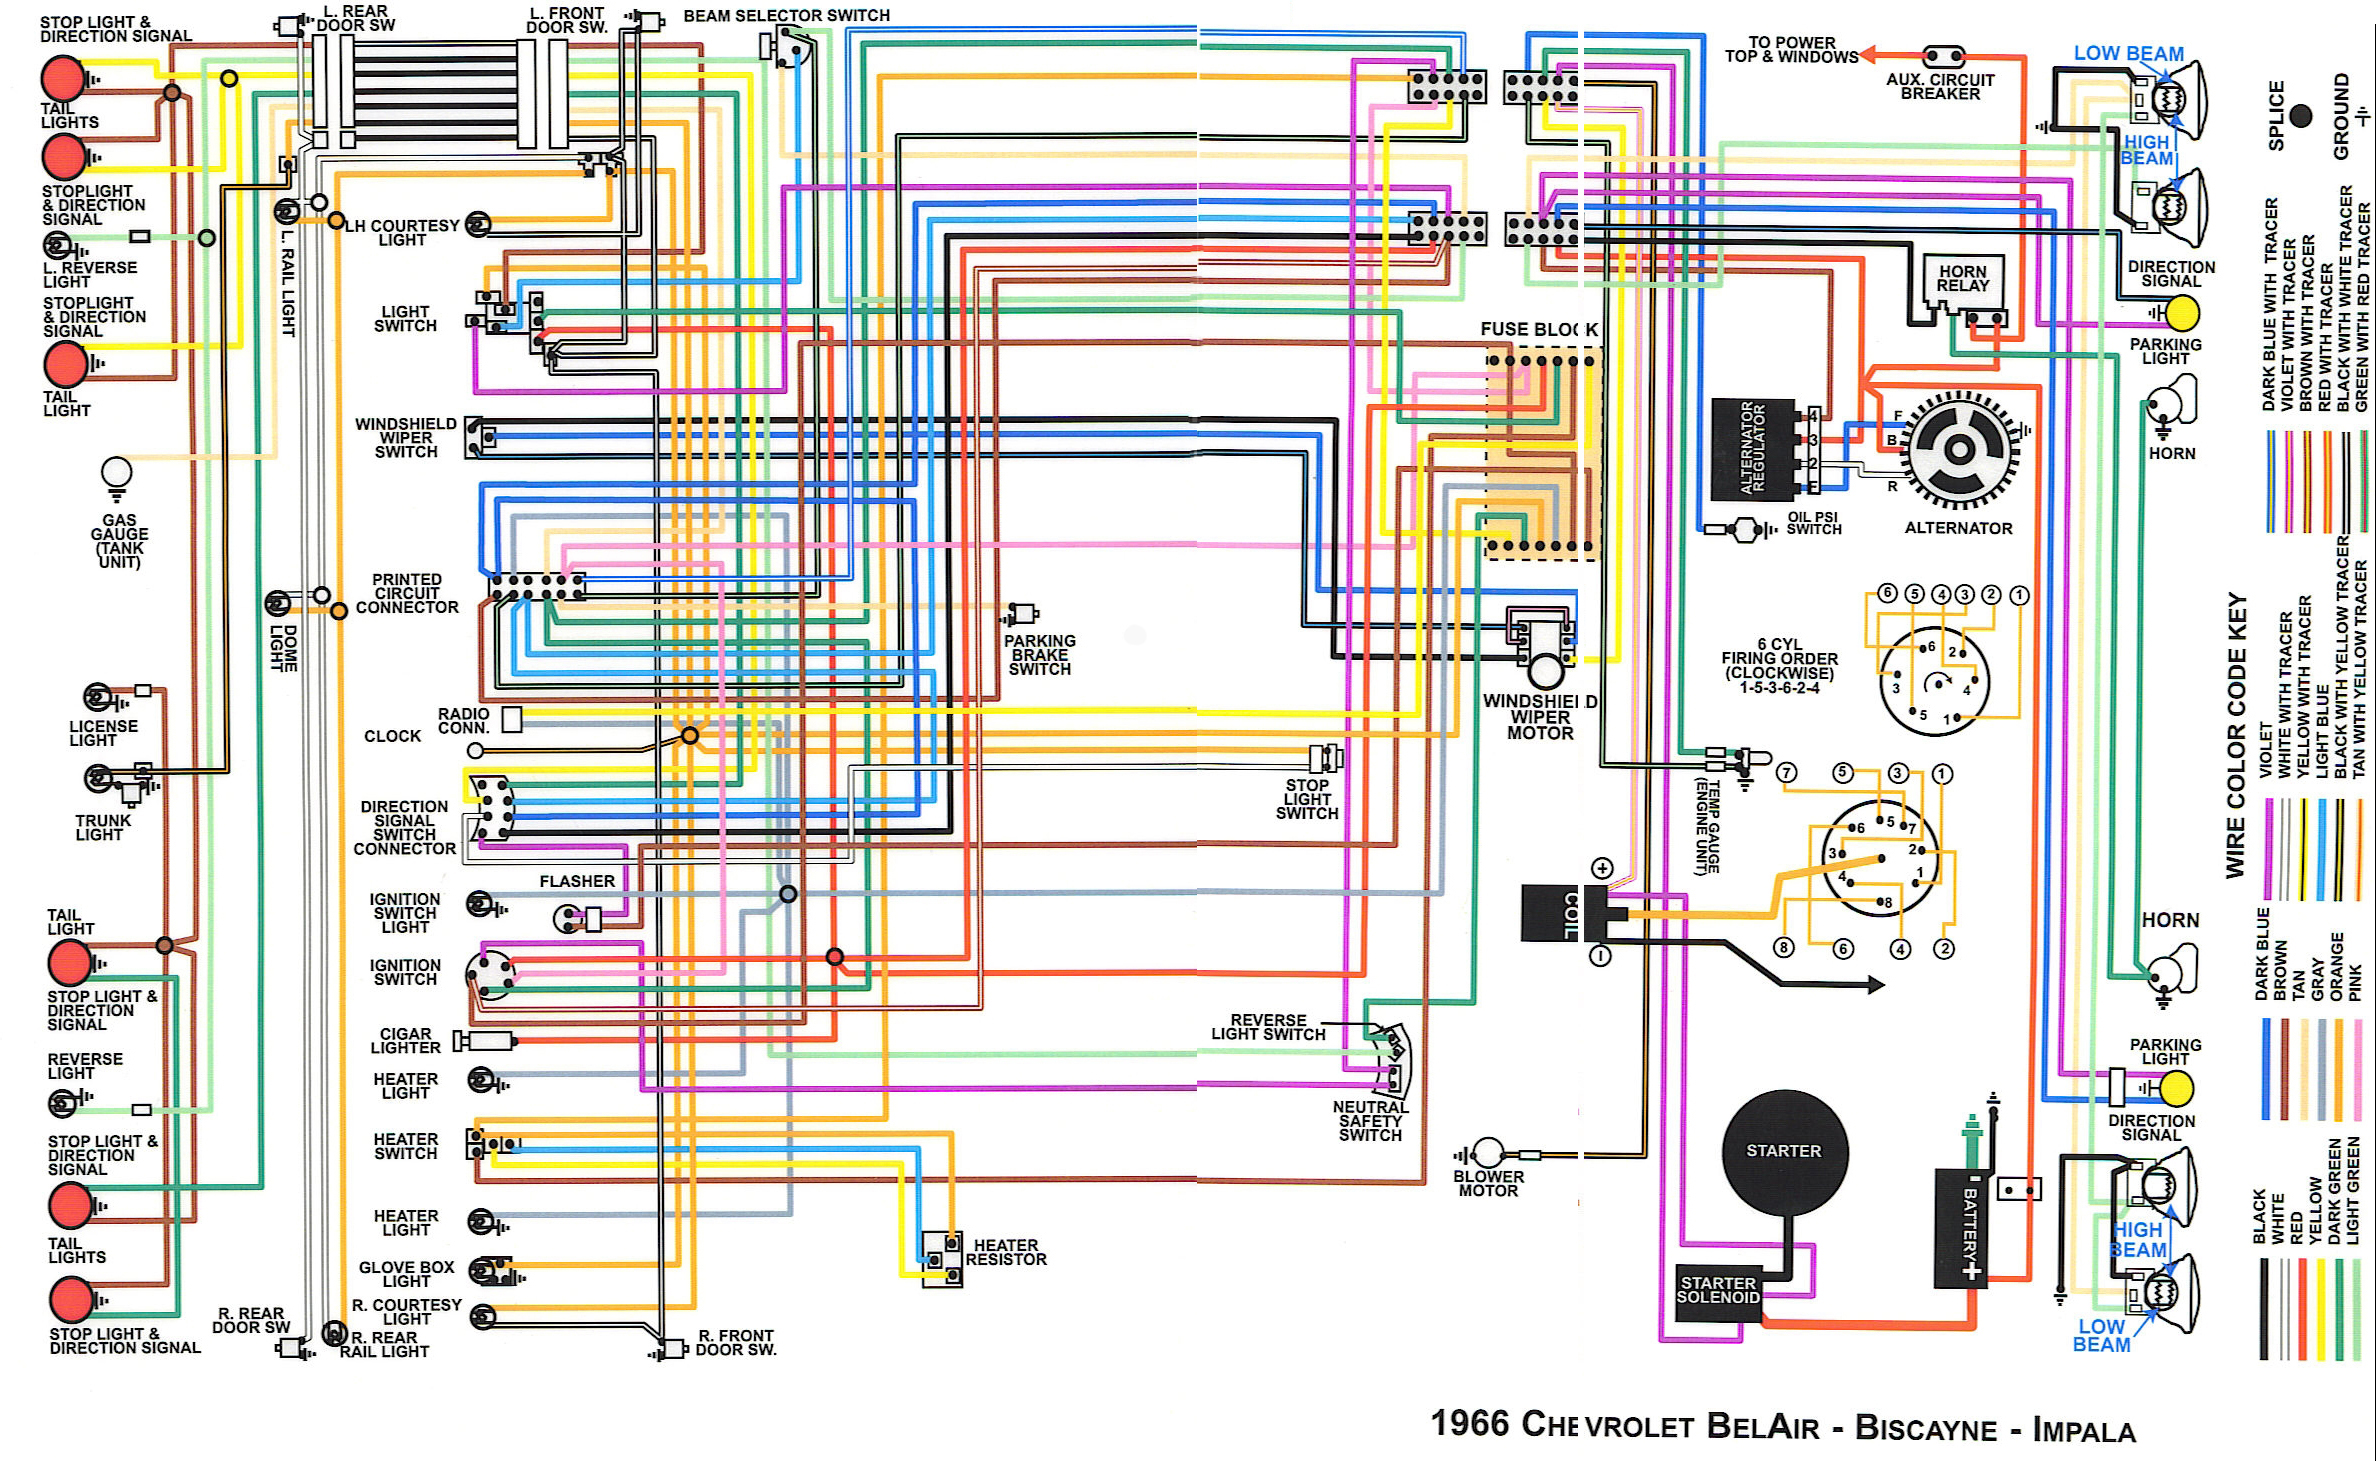 1972 chevelle wiring diagram wiring diagram a6 chevy tail light wiring diagram american wiring diagram 1972 chevelle little wiring diagrams j block wiring diagram 1972 chevelle 1972 chevelle wiring diagram